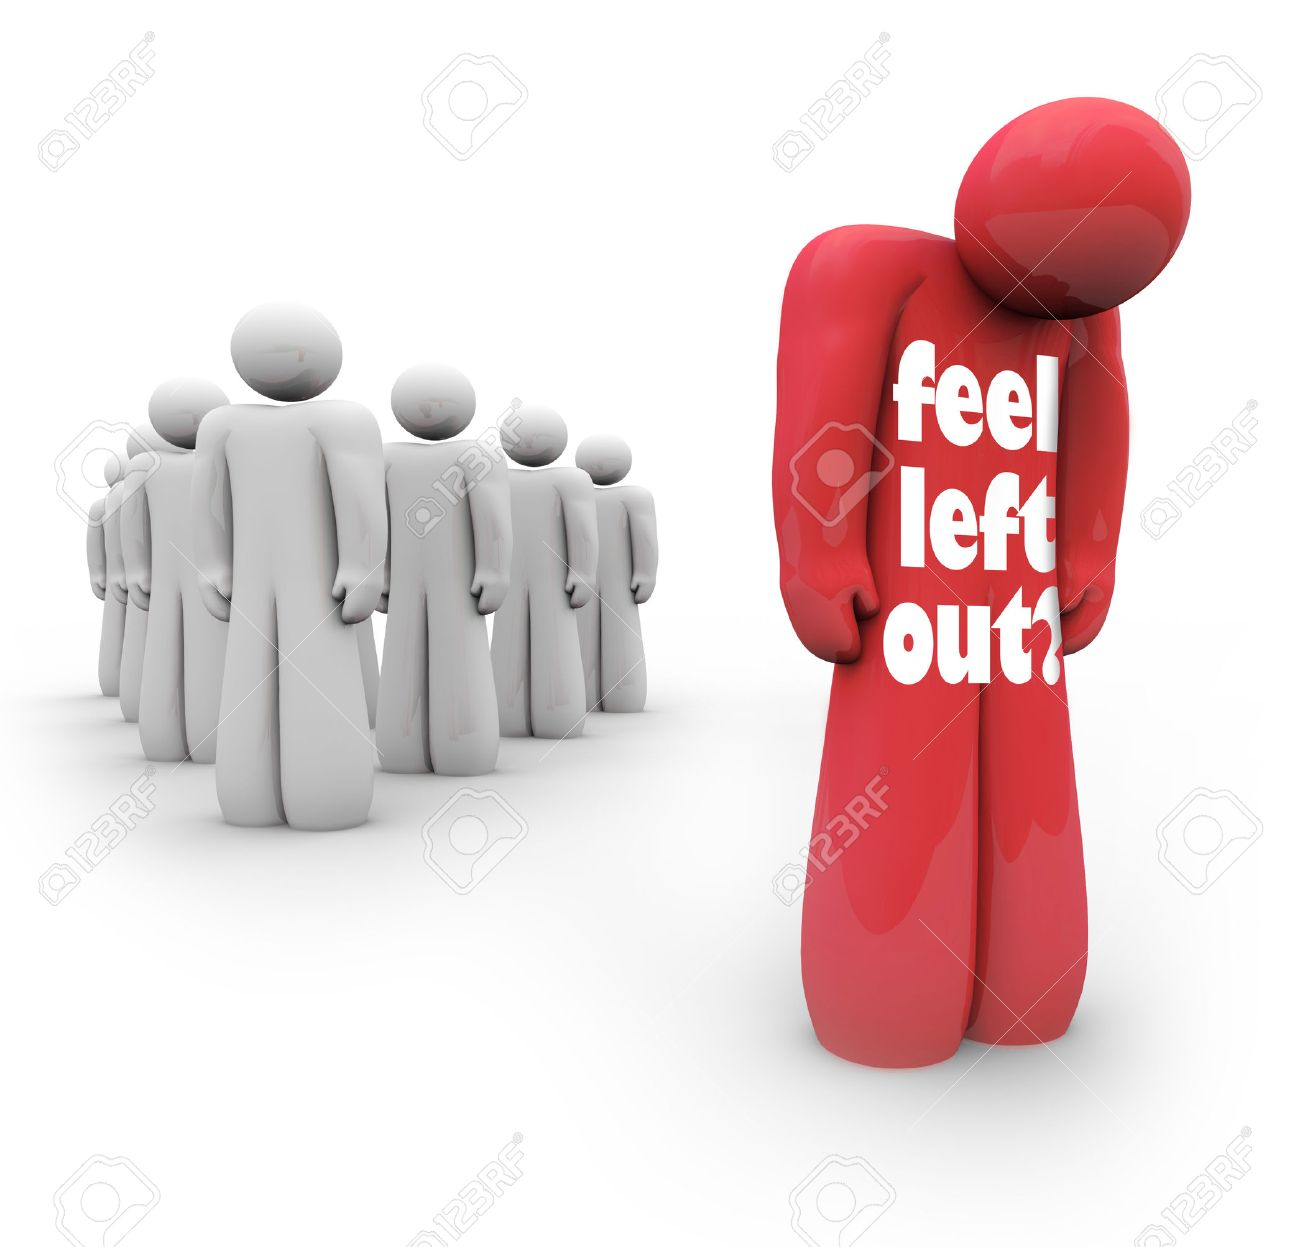 Feel Left Out words on a person isolated from the group, alone and depressed for being unpopular Stock Photo - 28490629